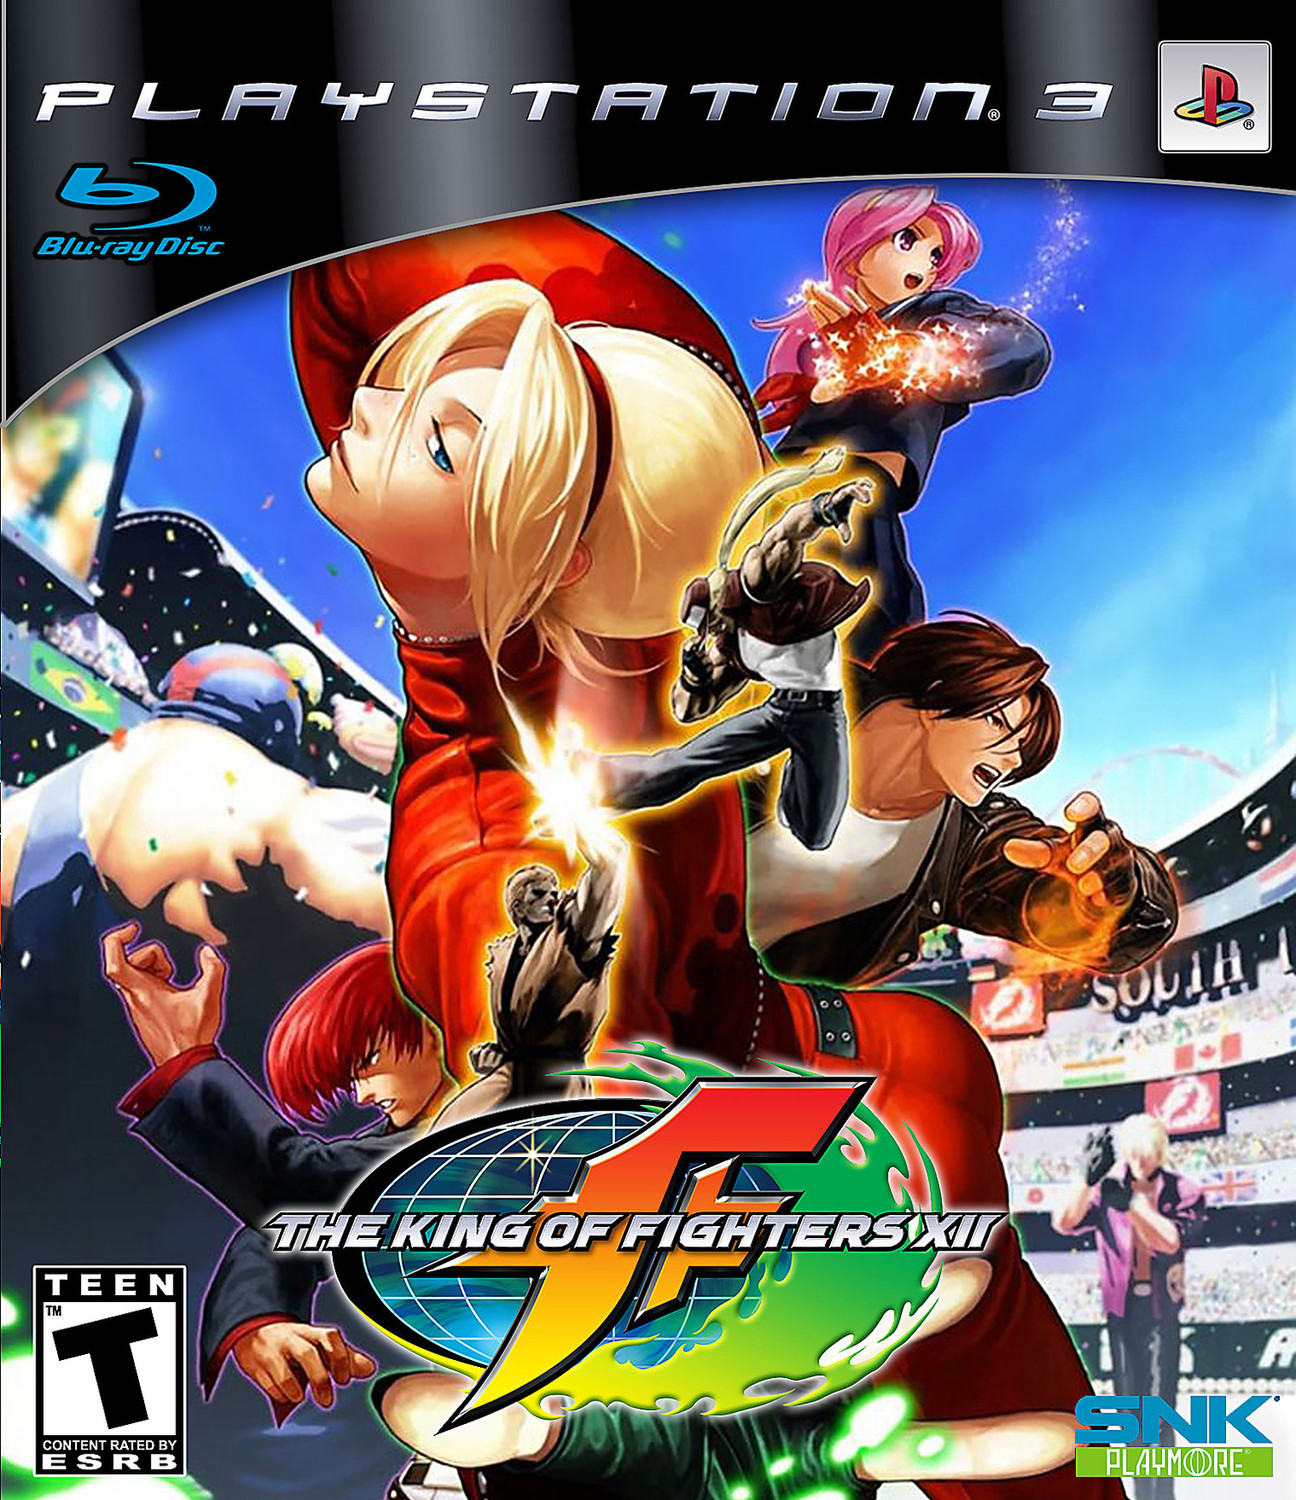 The King Of Fighters Xii Playstation 3 Ps3 Game